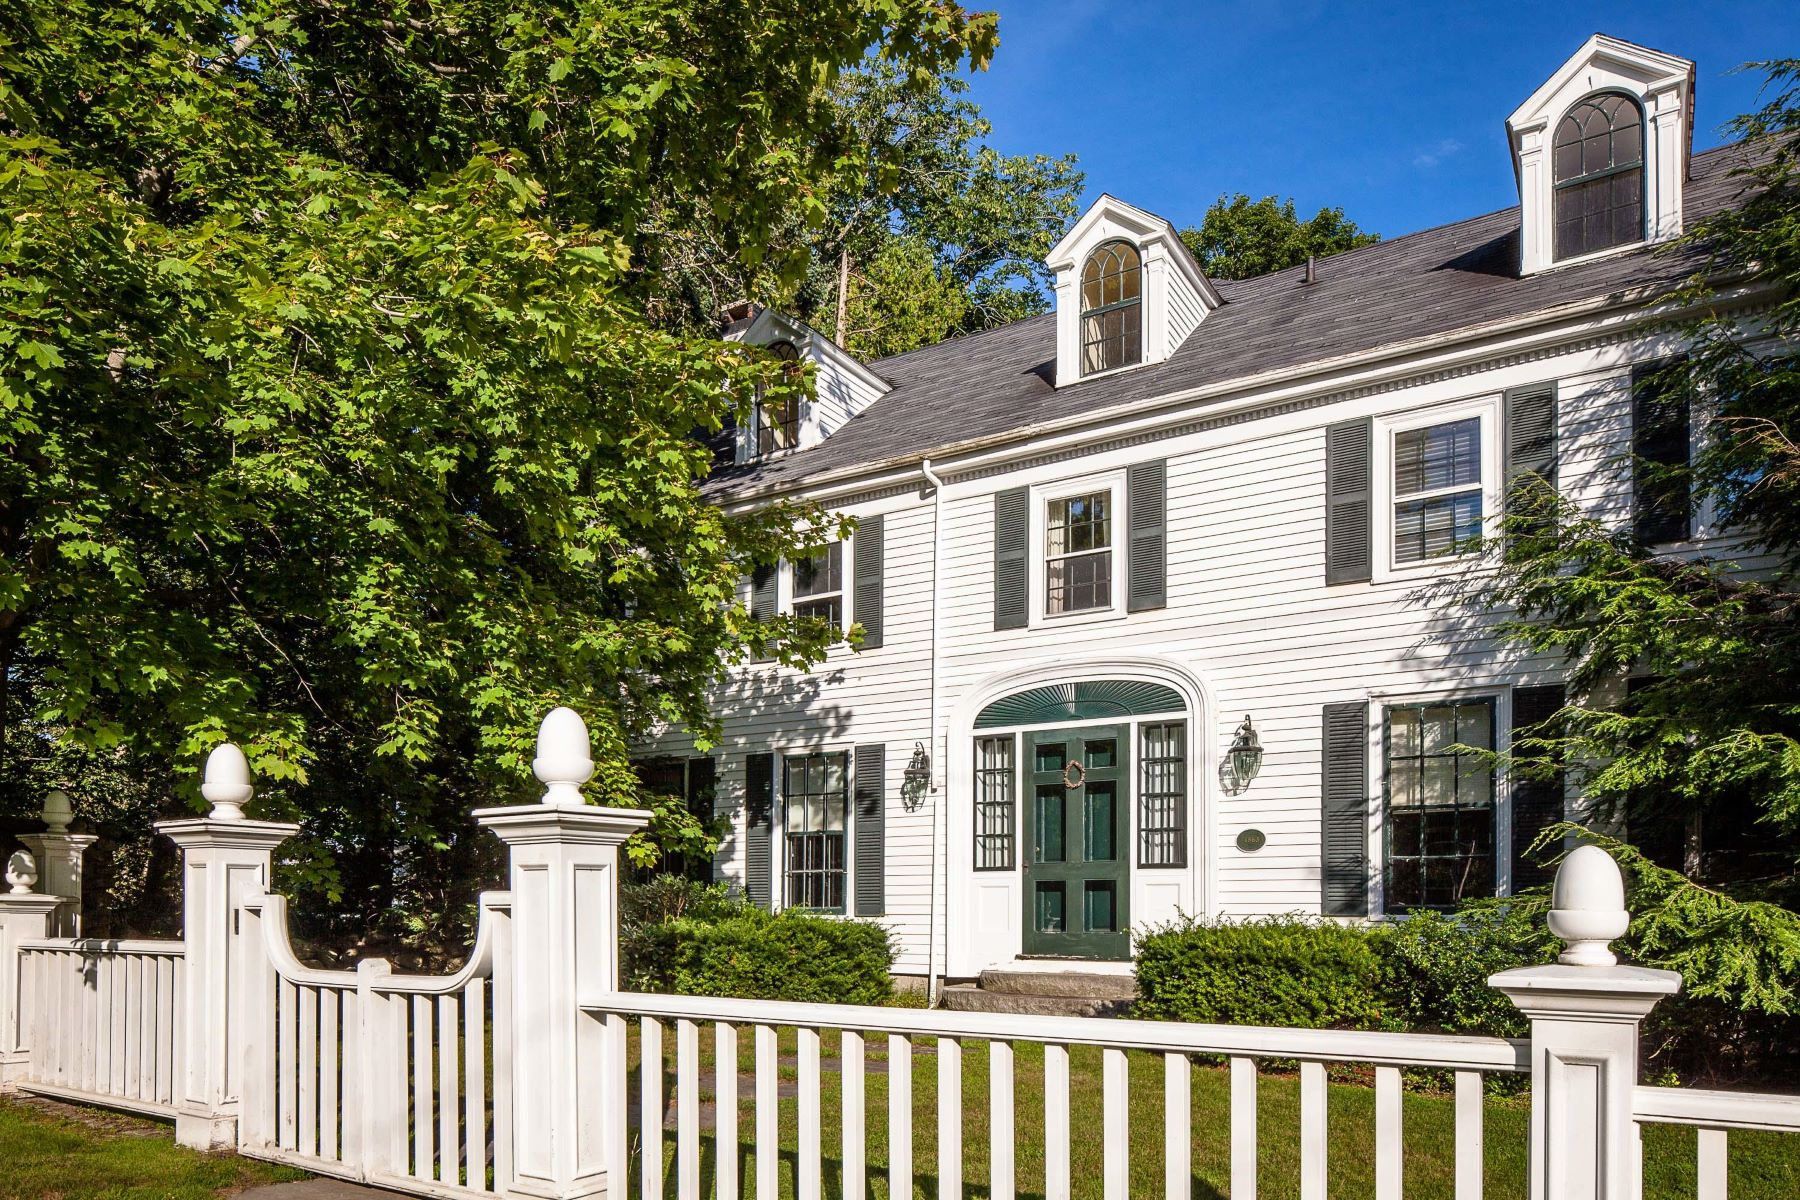 Single Family Homes for Active at 43 High Street Camden, Maine 04843 United States